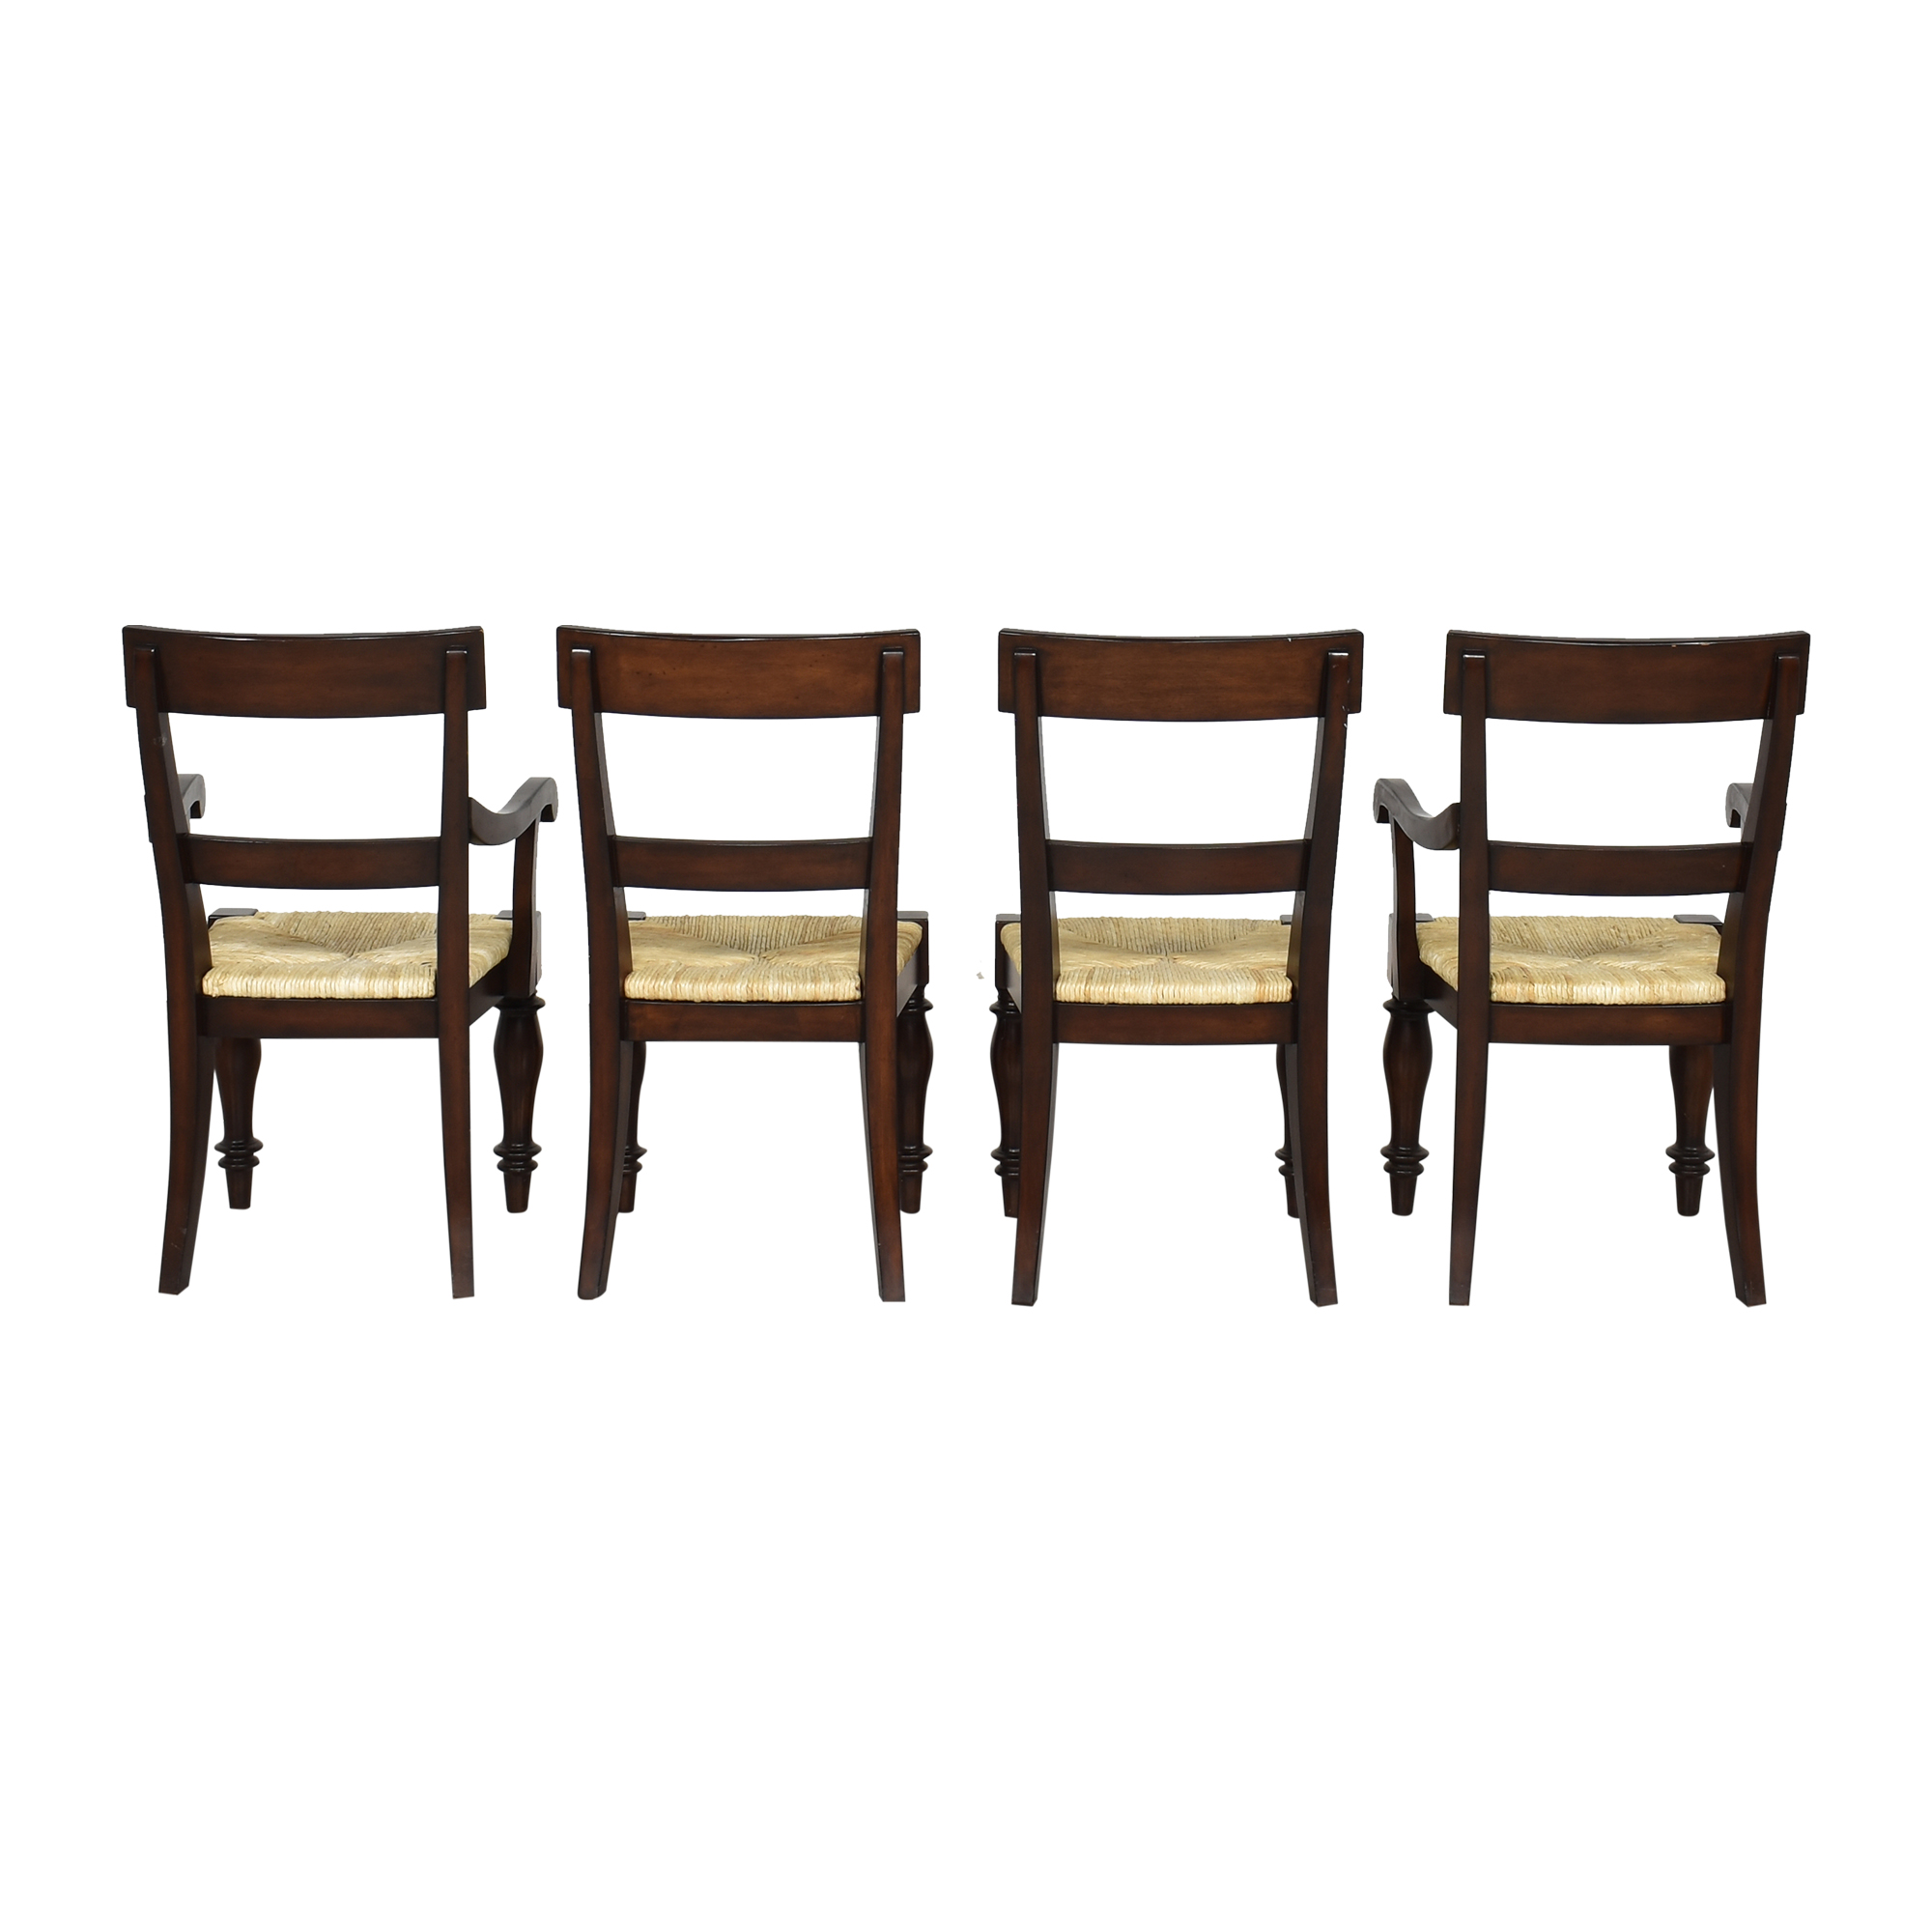 Pottery Barn Pottery Barn Montego Dining Chairs coupon